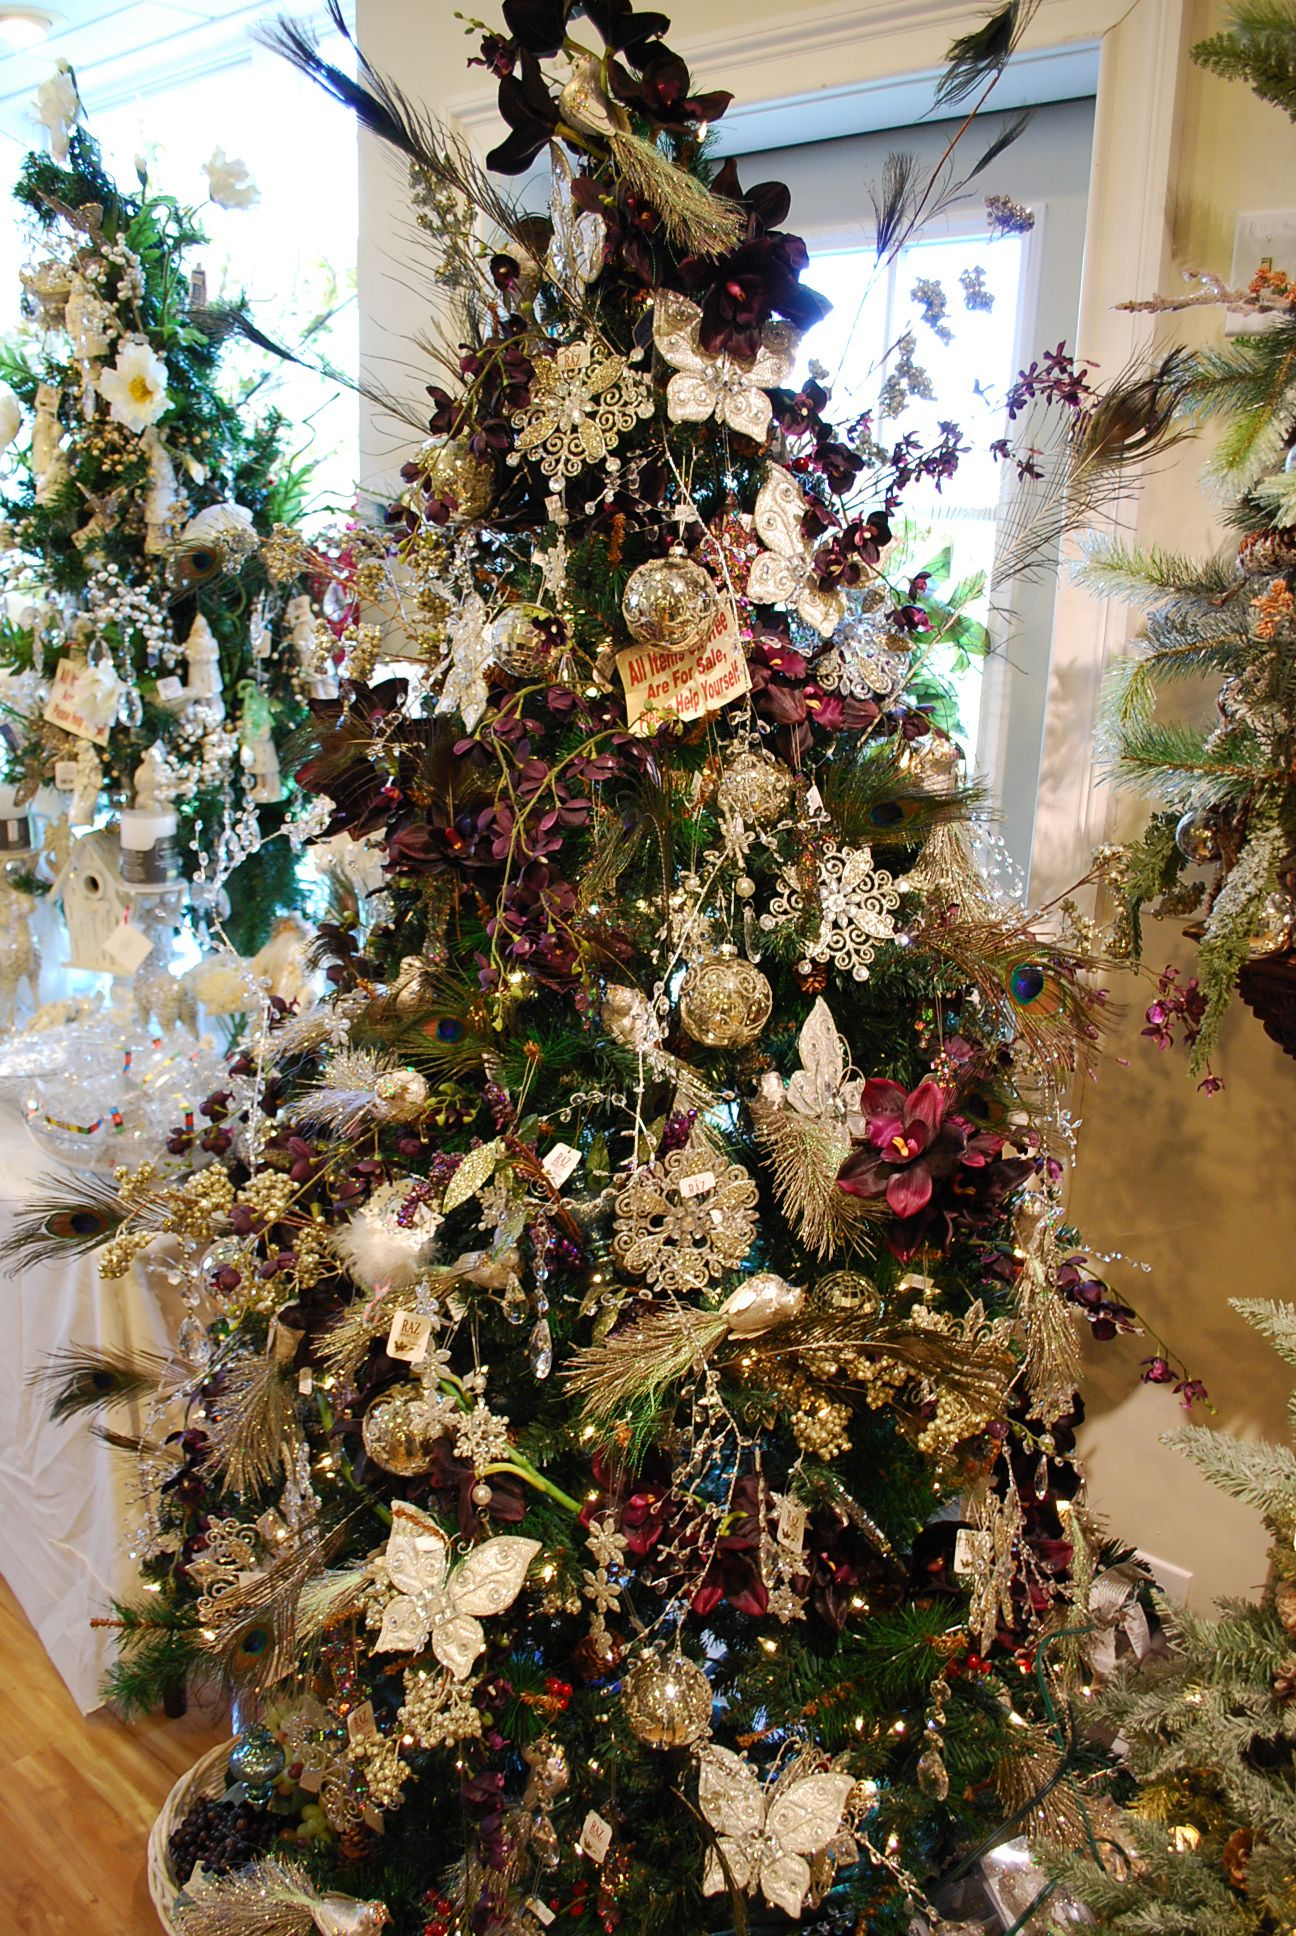 Orchid Christmas Tree.Christmas Tree Decorated With Peacock Feathers Silver Bird